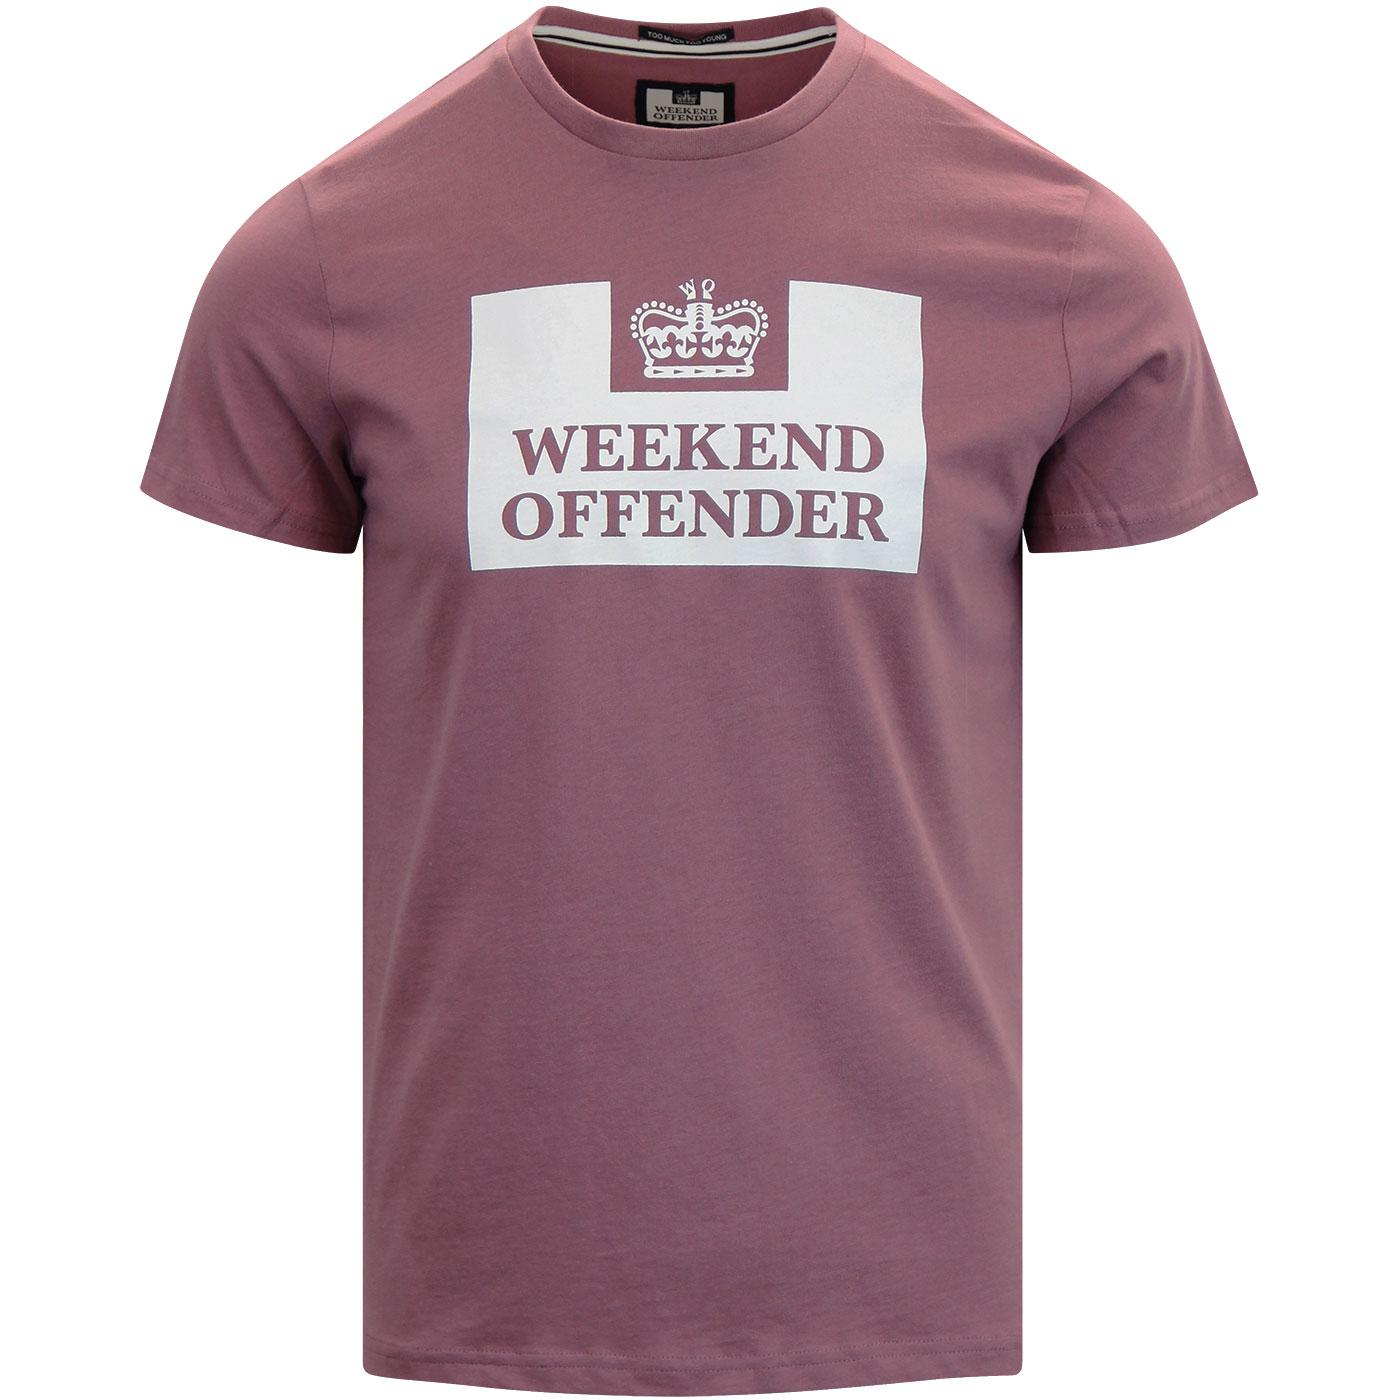 WEEKEND OFFENDER Retro Casuals Prison Tee Plum